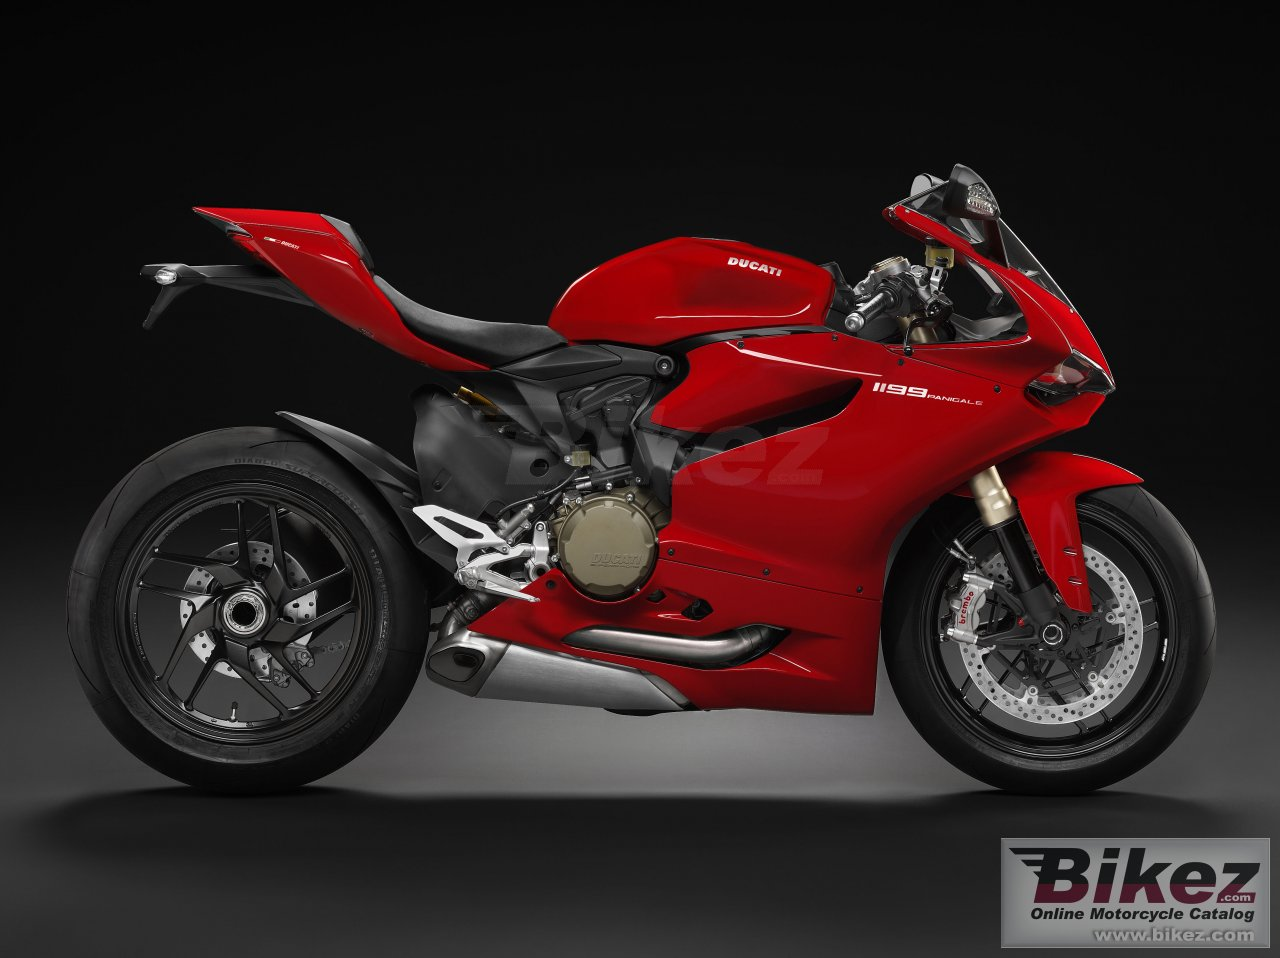 Big Ducati 1199 panigale picture and wallpaper from Bikez.com